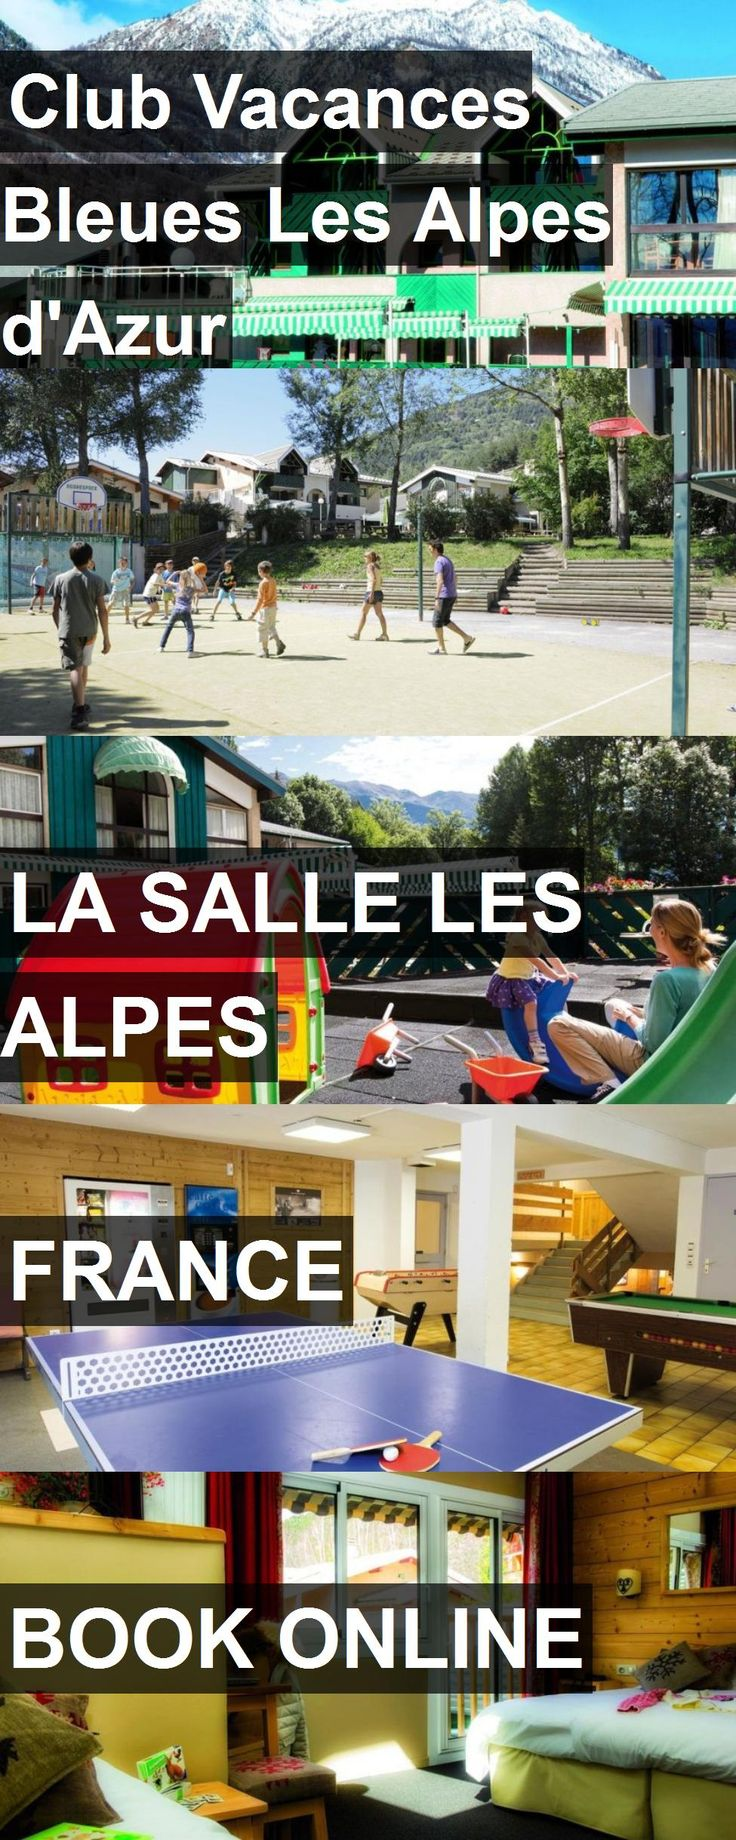 Hotel Club Vacances Bleues Les Alpes d'Azur in La Salle les Alpes, France. For more information, photos, reviews and best prices please follow the link. #France #LaSallelesAlpes #travel #vacation #hotel